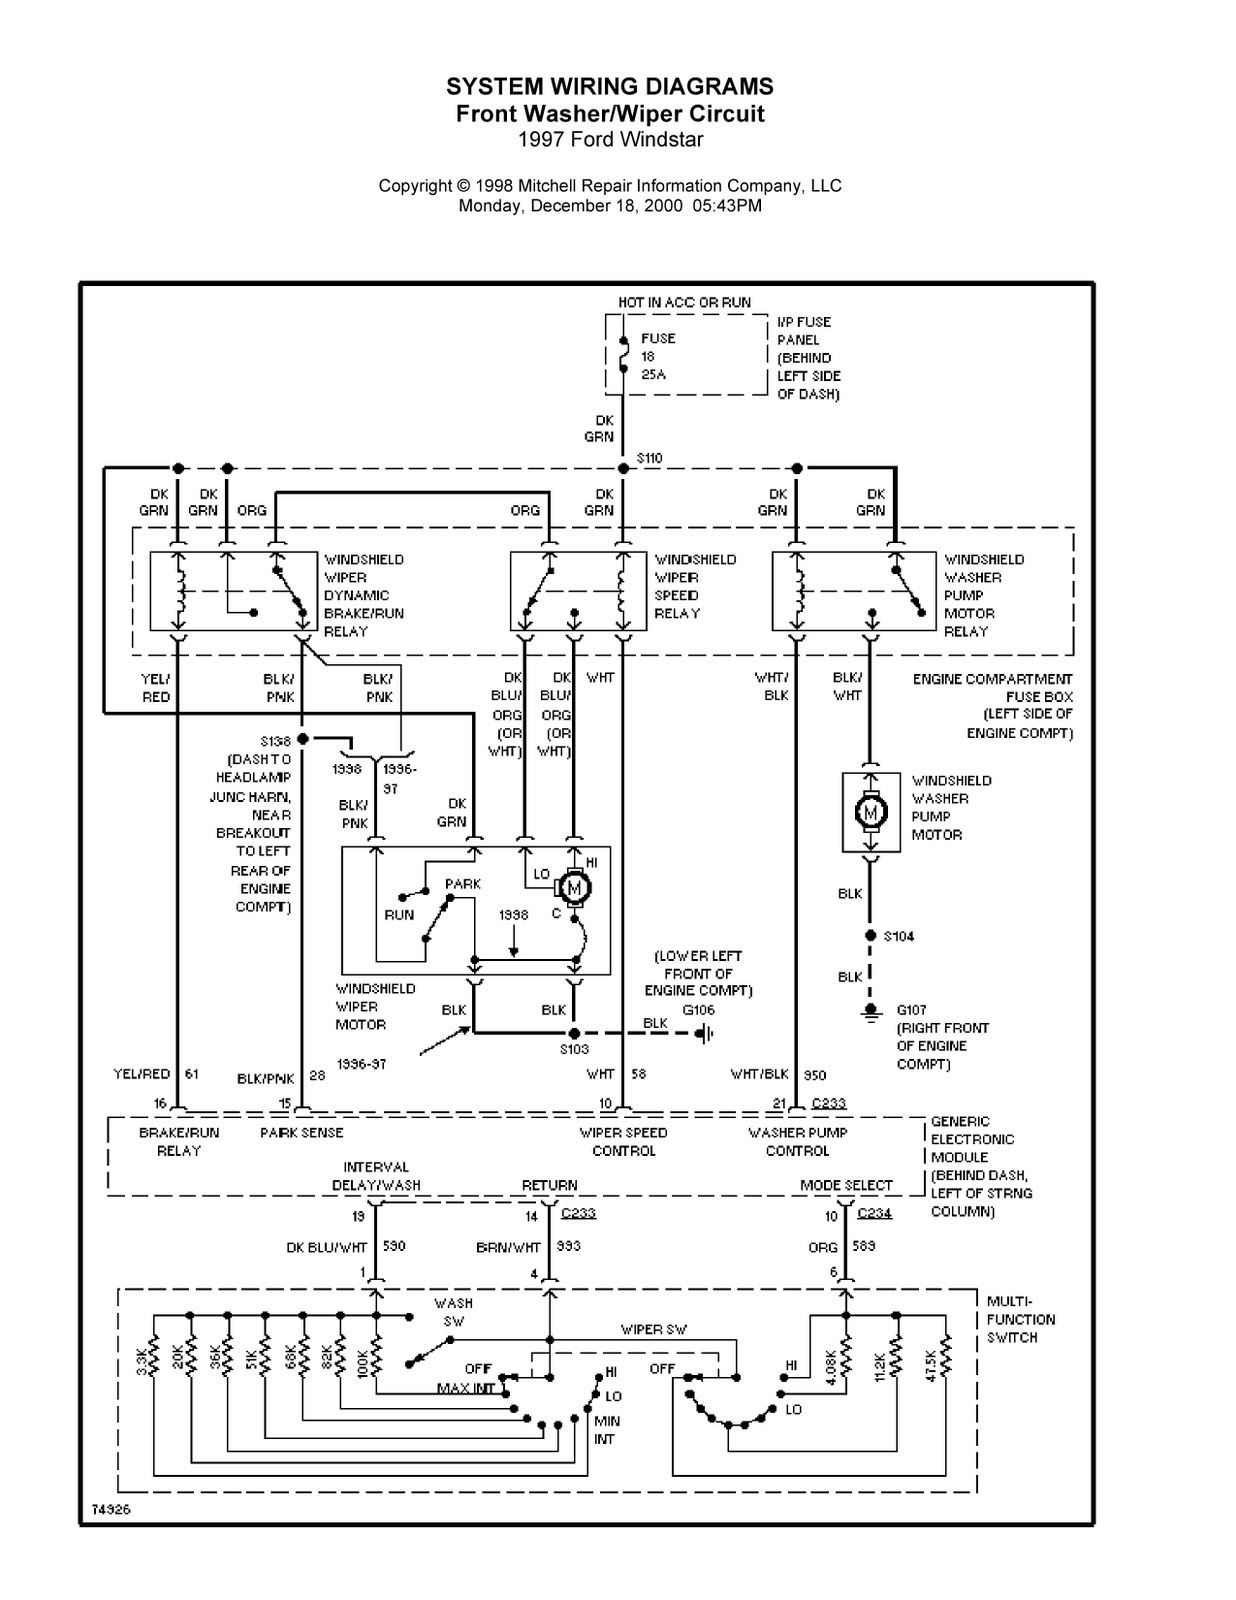 0051 1997 ford windstar complete system wiring diagrams wiring  at panicattacktreatment.co